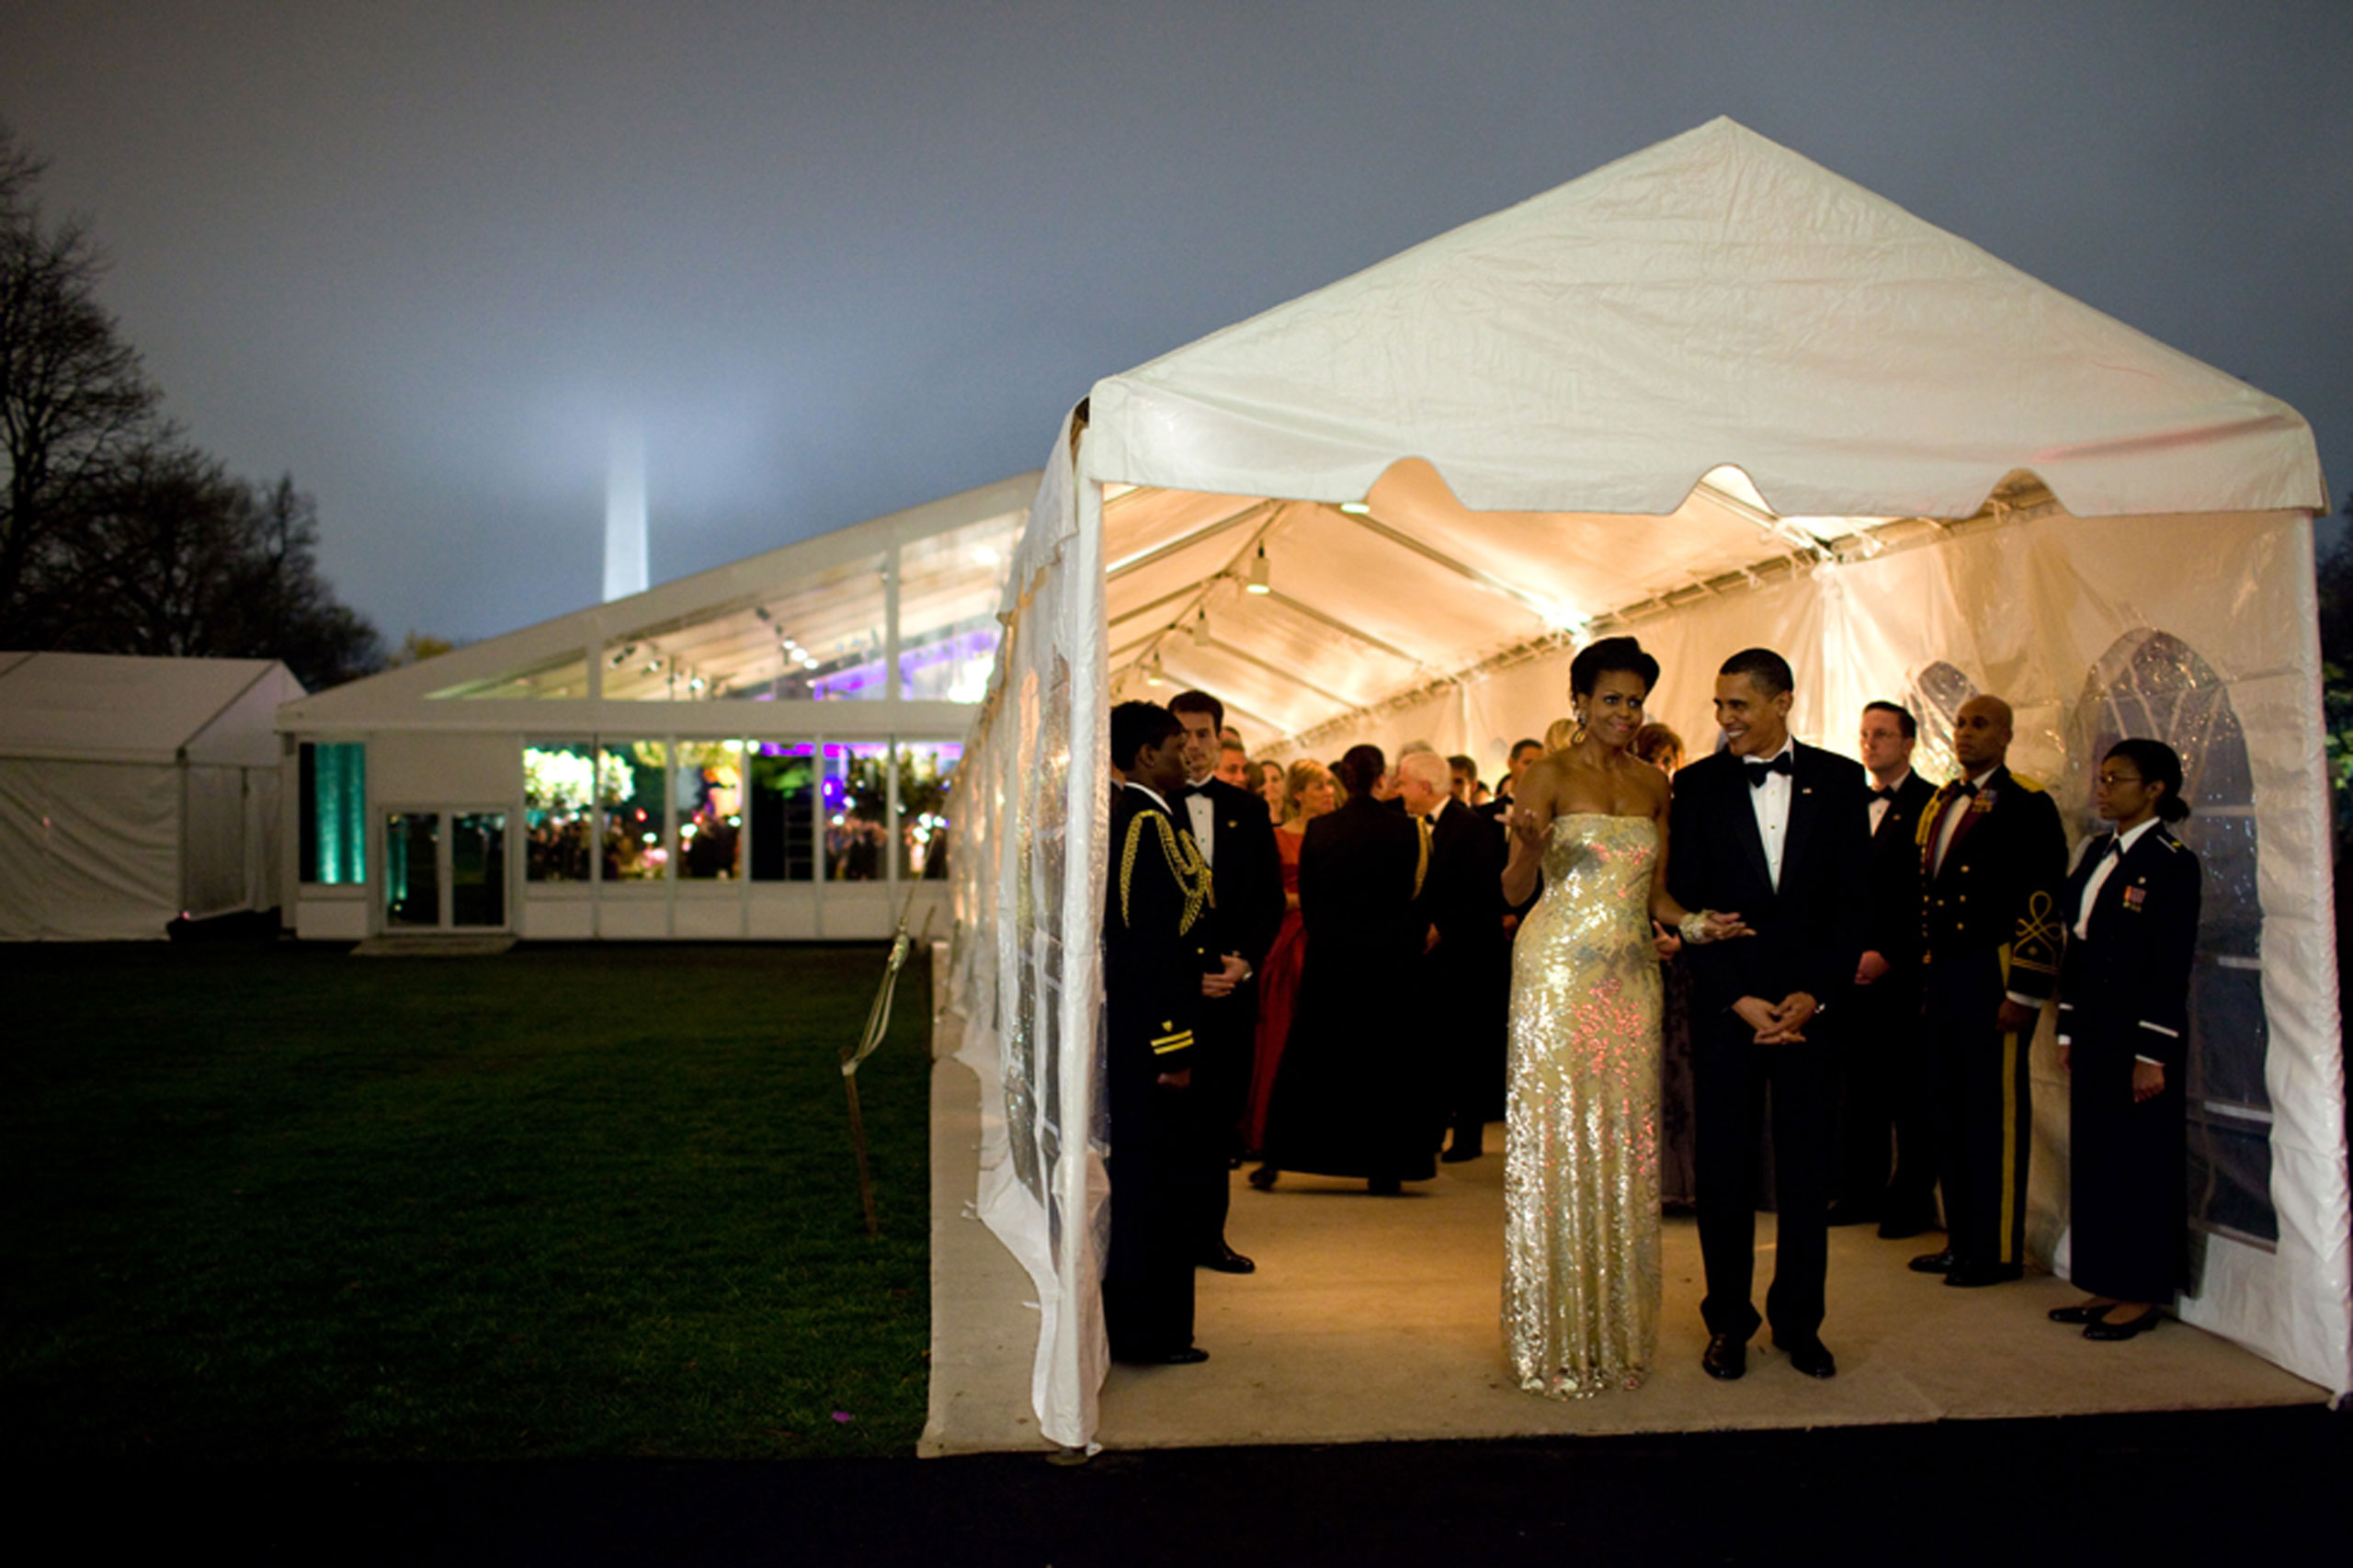 """""""The President and First Lady wait for Indian Prime Minister Singh's motorcade to depart the White House at the conclusion of the first official state dinner for the Obama administration, Nov. 24, 2009. The dinner was held in a tent on the South Lawn. The mist and fog made for an interesting scene, even obscuring the top of the Washington Monument in the background."""""""